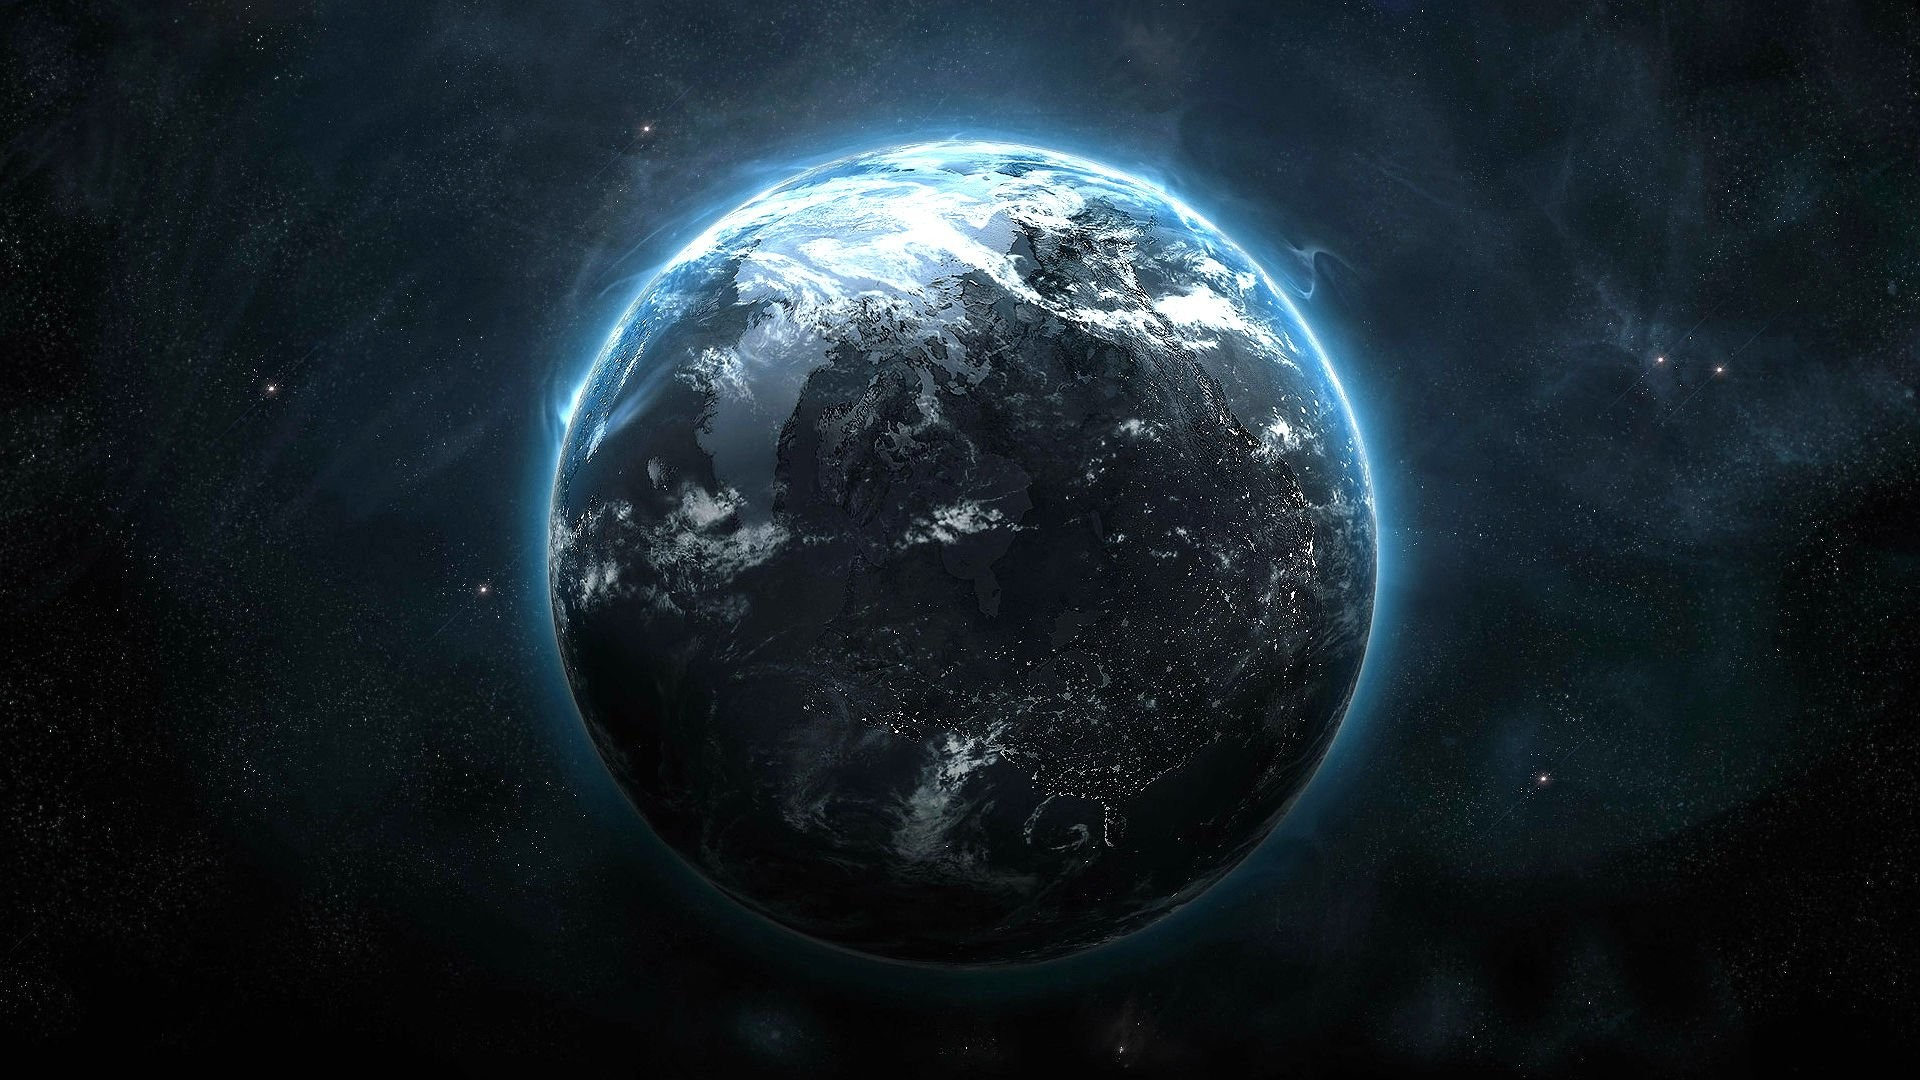 planet earth space wallpaper     572725   WallpaperUP .